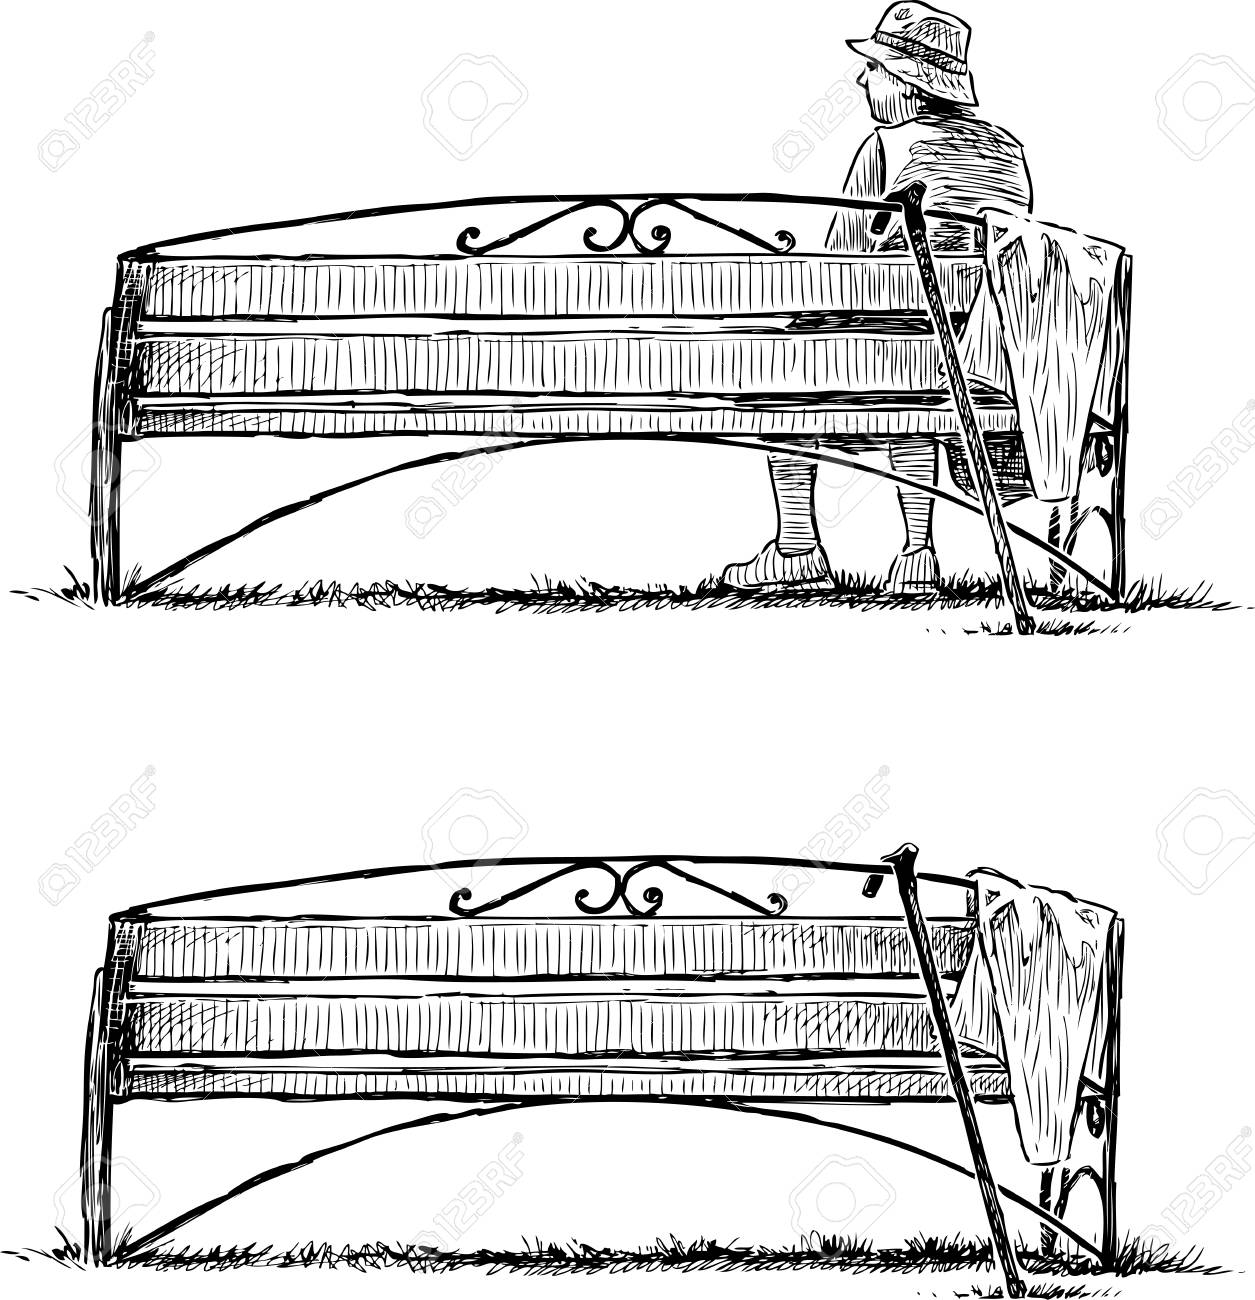 Sketch Of A Bench In A Park And An Elderly Woman Relaxing Royalty